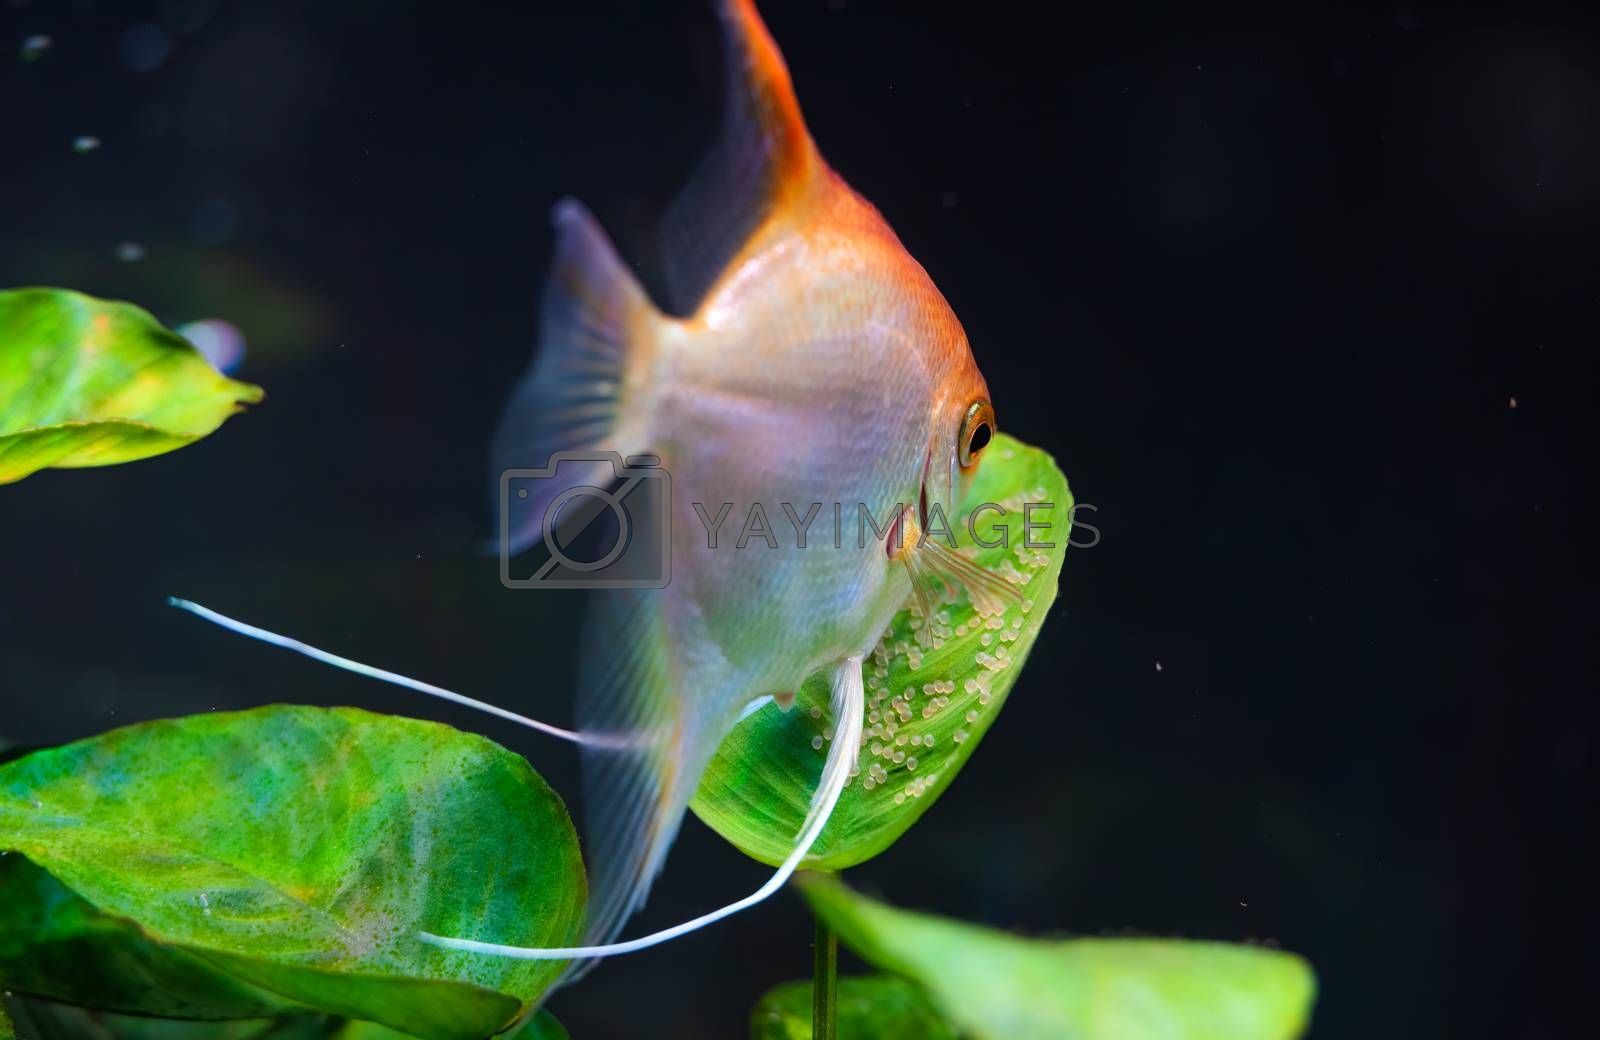 Gold Pterophyllum Scalare guarding eggs. Roe on the leaf by Madphotos